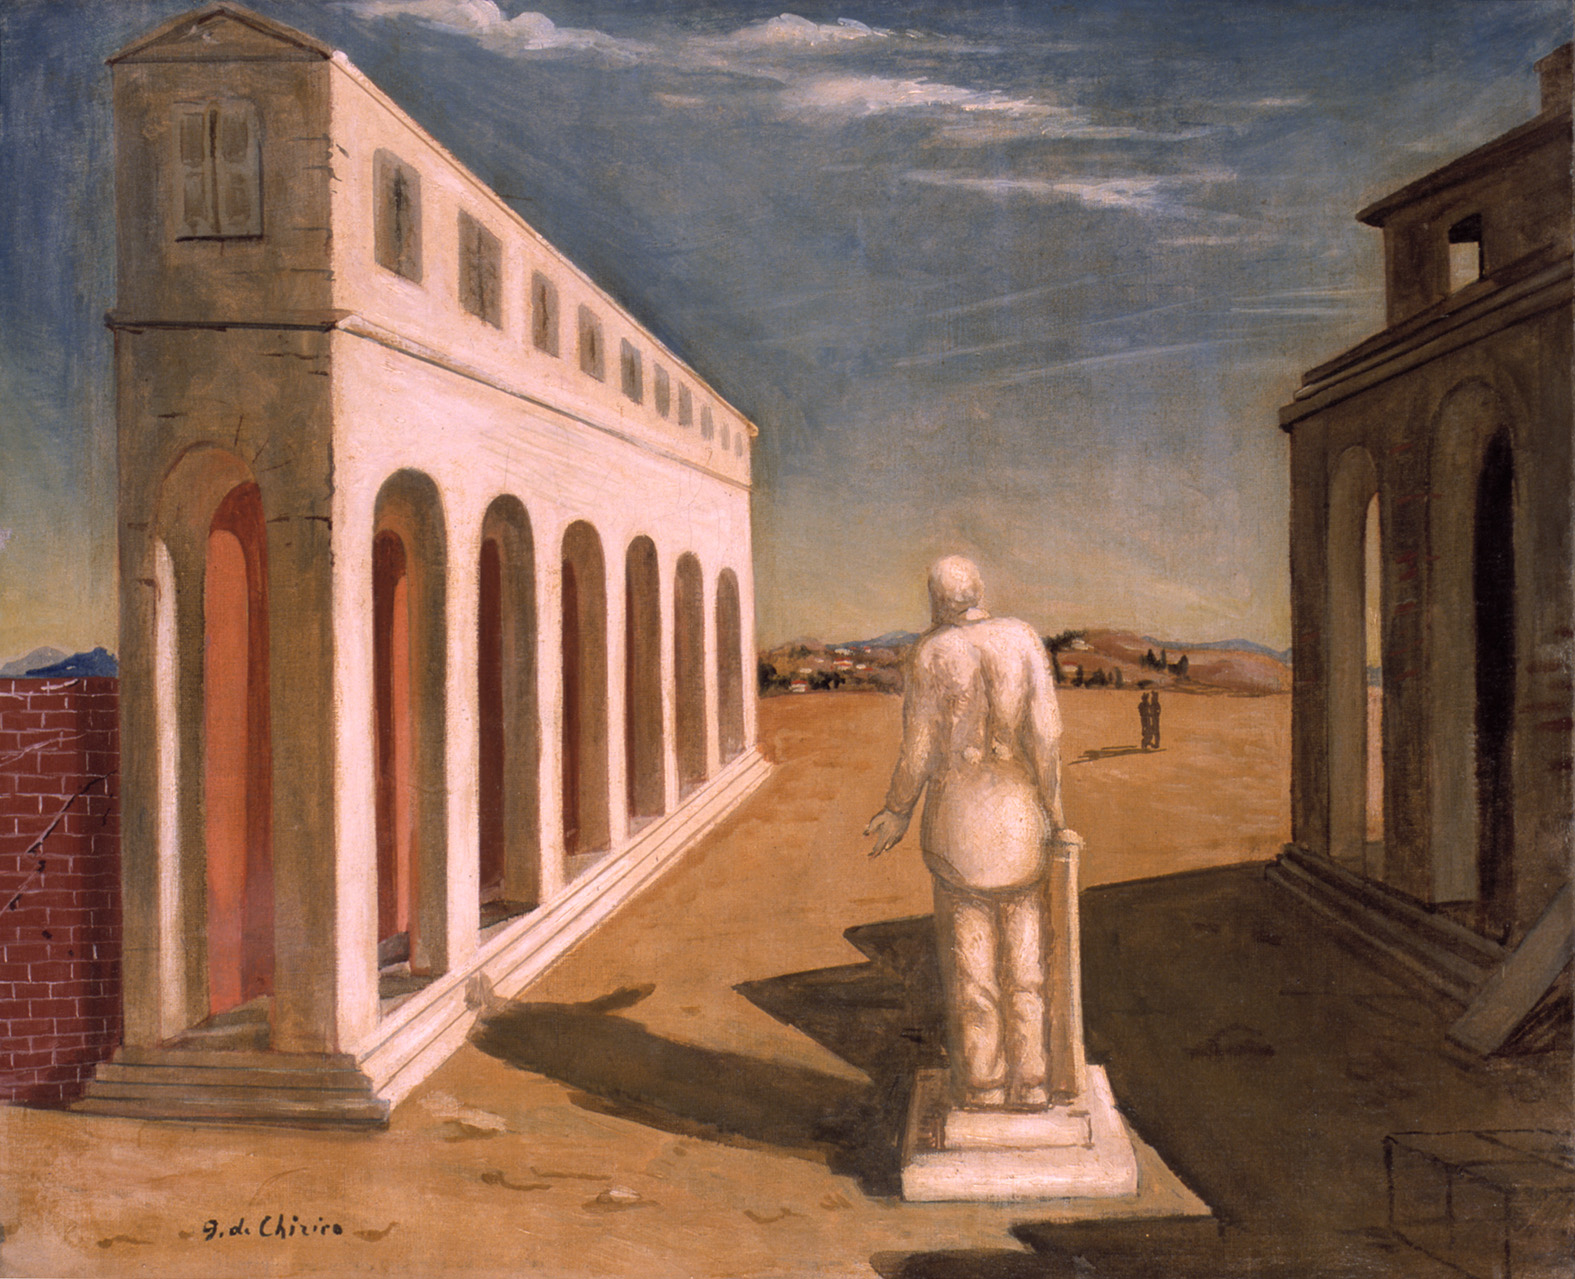 Giorgio De Chirico 1888-1978 | Italian surrealist painter | The Metaphysical art movement